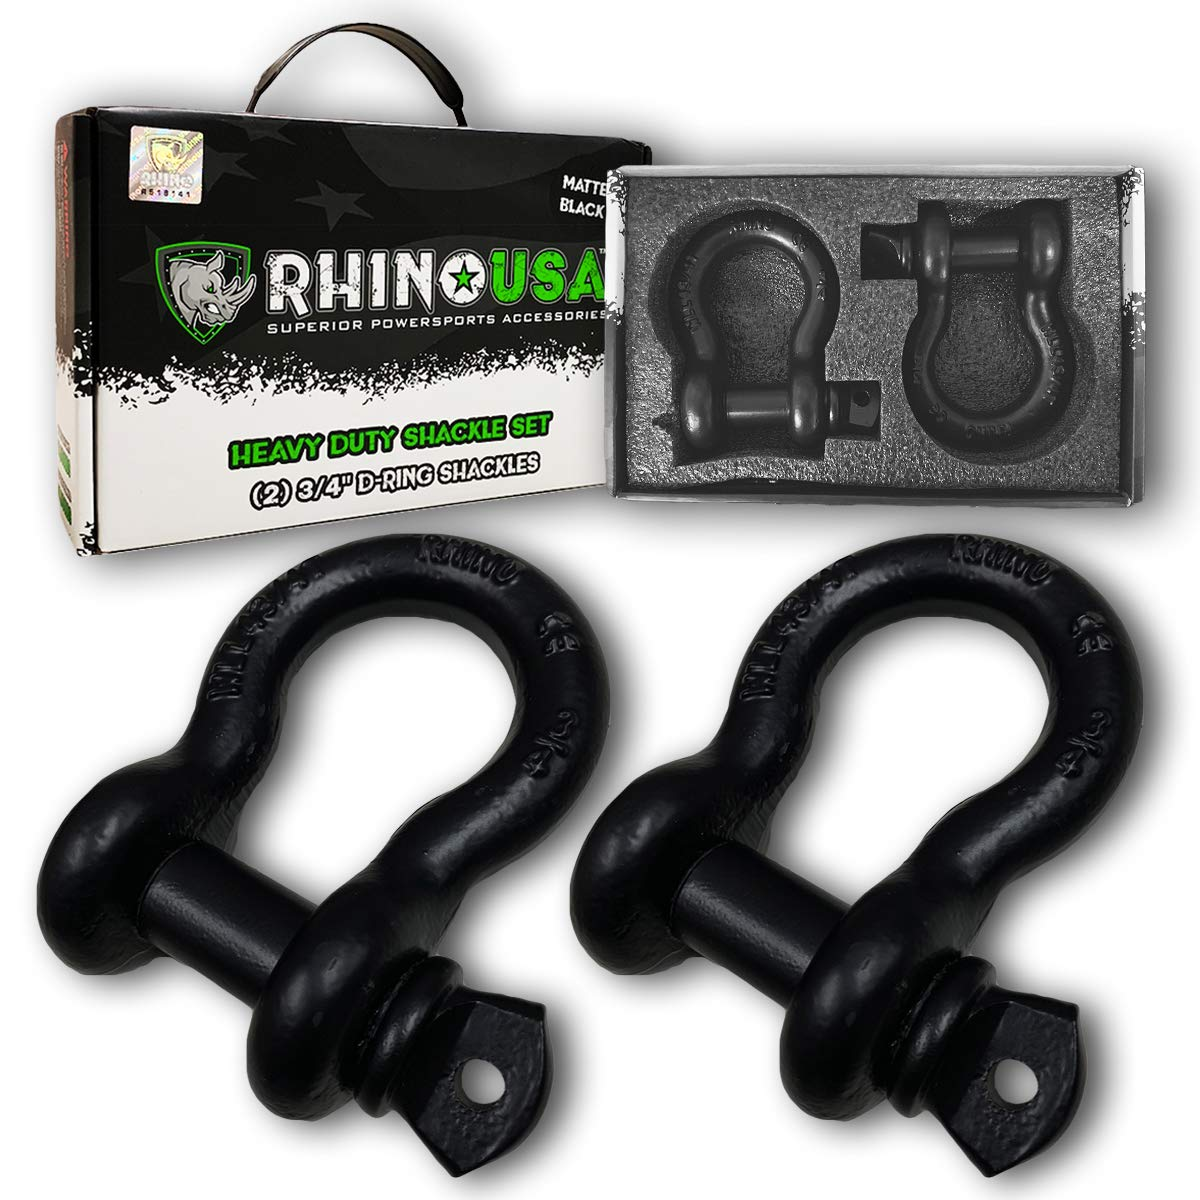 Rhino USA D Ring Shackle (2 Pack) 41,850lb Break Strength - 3/4'' Shackle with 7/8 Pin for use with Tow Strap, Winch, Off-Road Jeep Truck Vehicle Recovery, Best Offroad Towing Accessories (BLACK MATTE) by Rhino USA